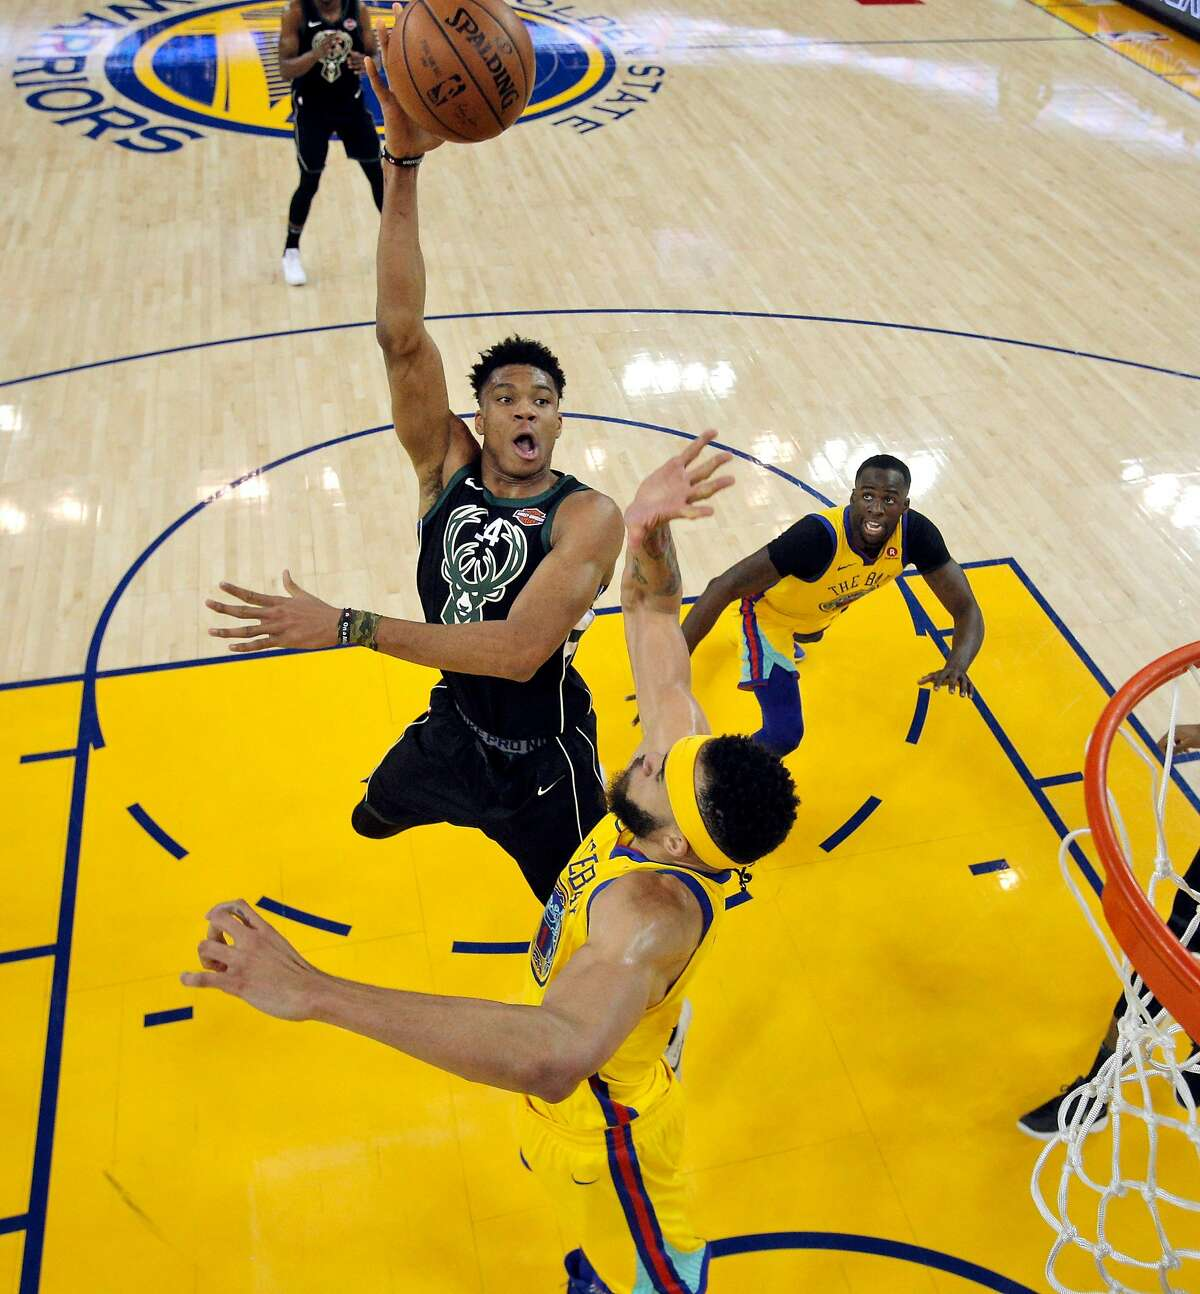 Giannis Antetokounmpo (34) puts up a shot over JaVale McGee (1) in the first half as the Golden State Warriors played the Milwaukee Bucks at Oracle Arena in Oakland, Calif., on Thursday, March 29, 2018.